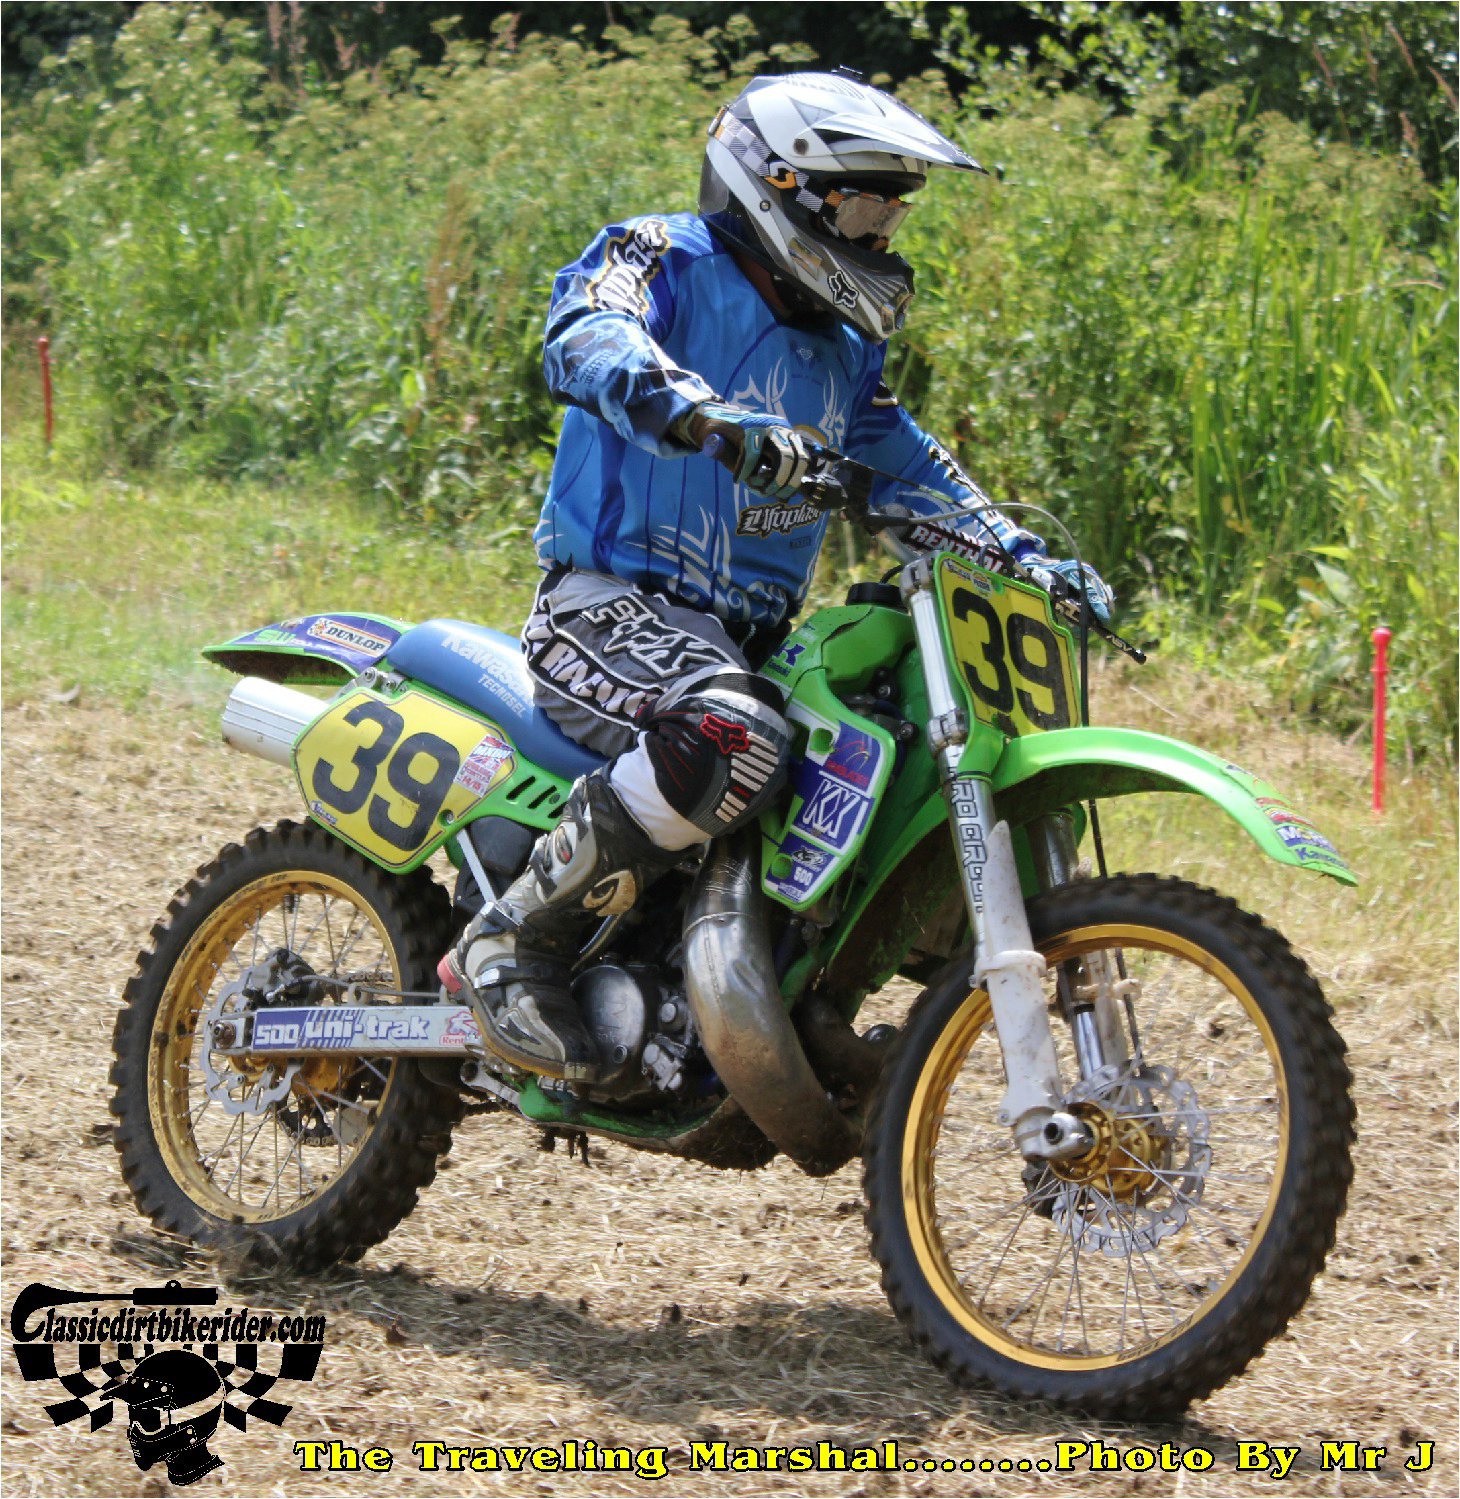 king of the castle 2015 photos Farleigh Castle twinshock motocross classicdirtbikerider.com 43